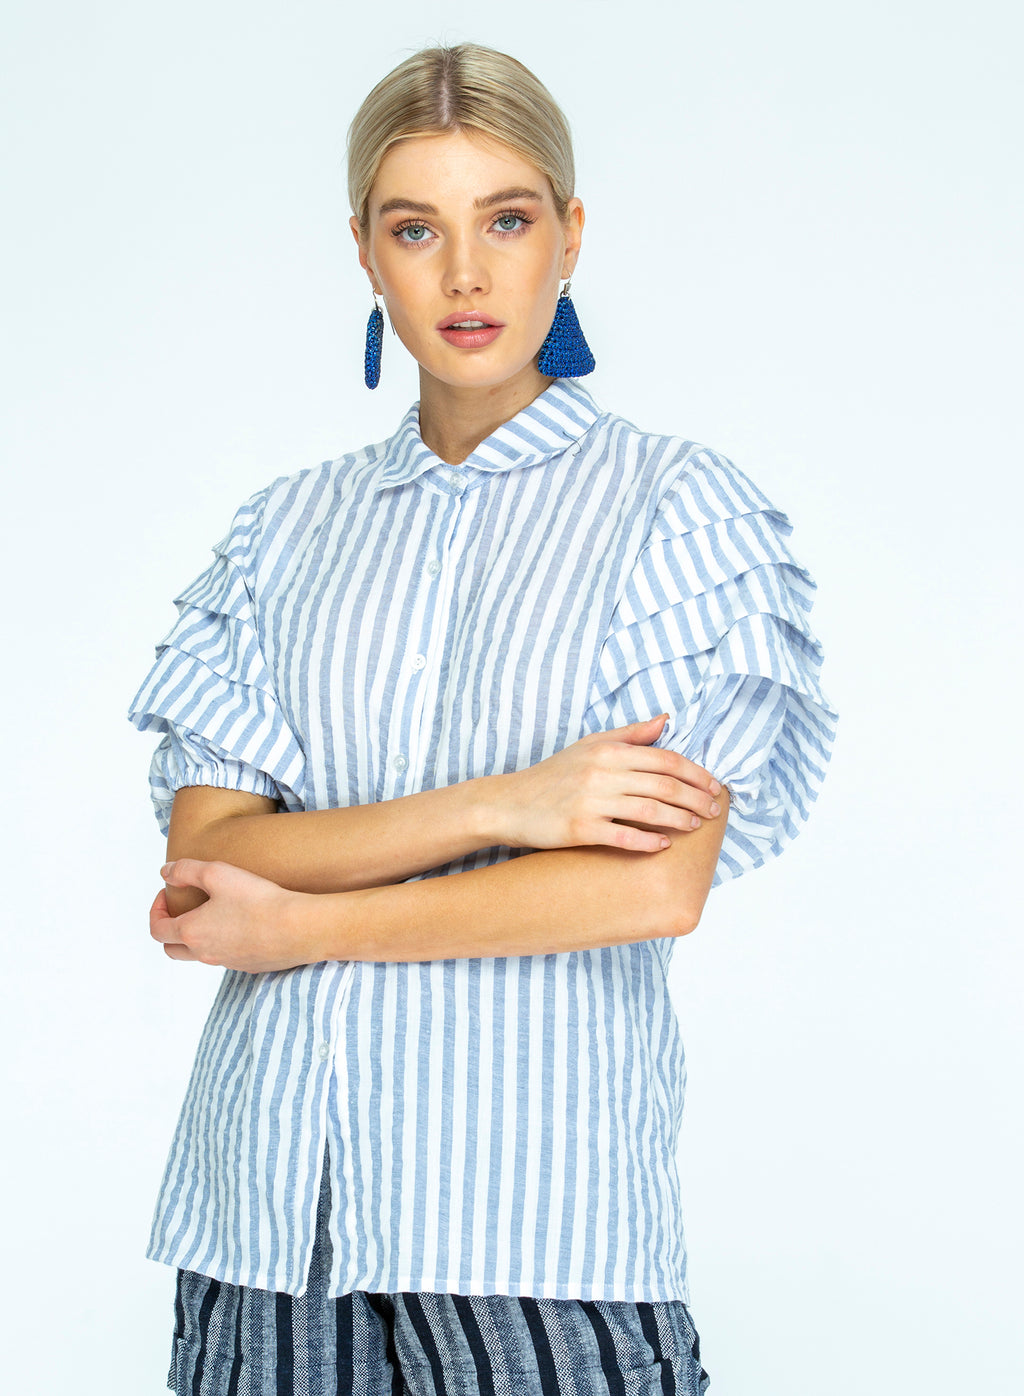 THE ROSE SLEEVE SHIRT IN WOVEN BLUE/WHITE STRIPE - PRE-ORDER